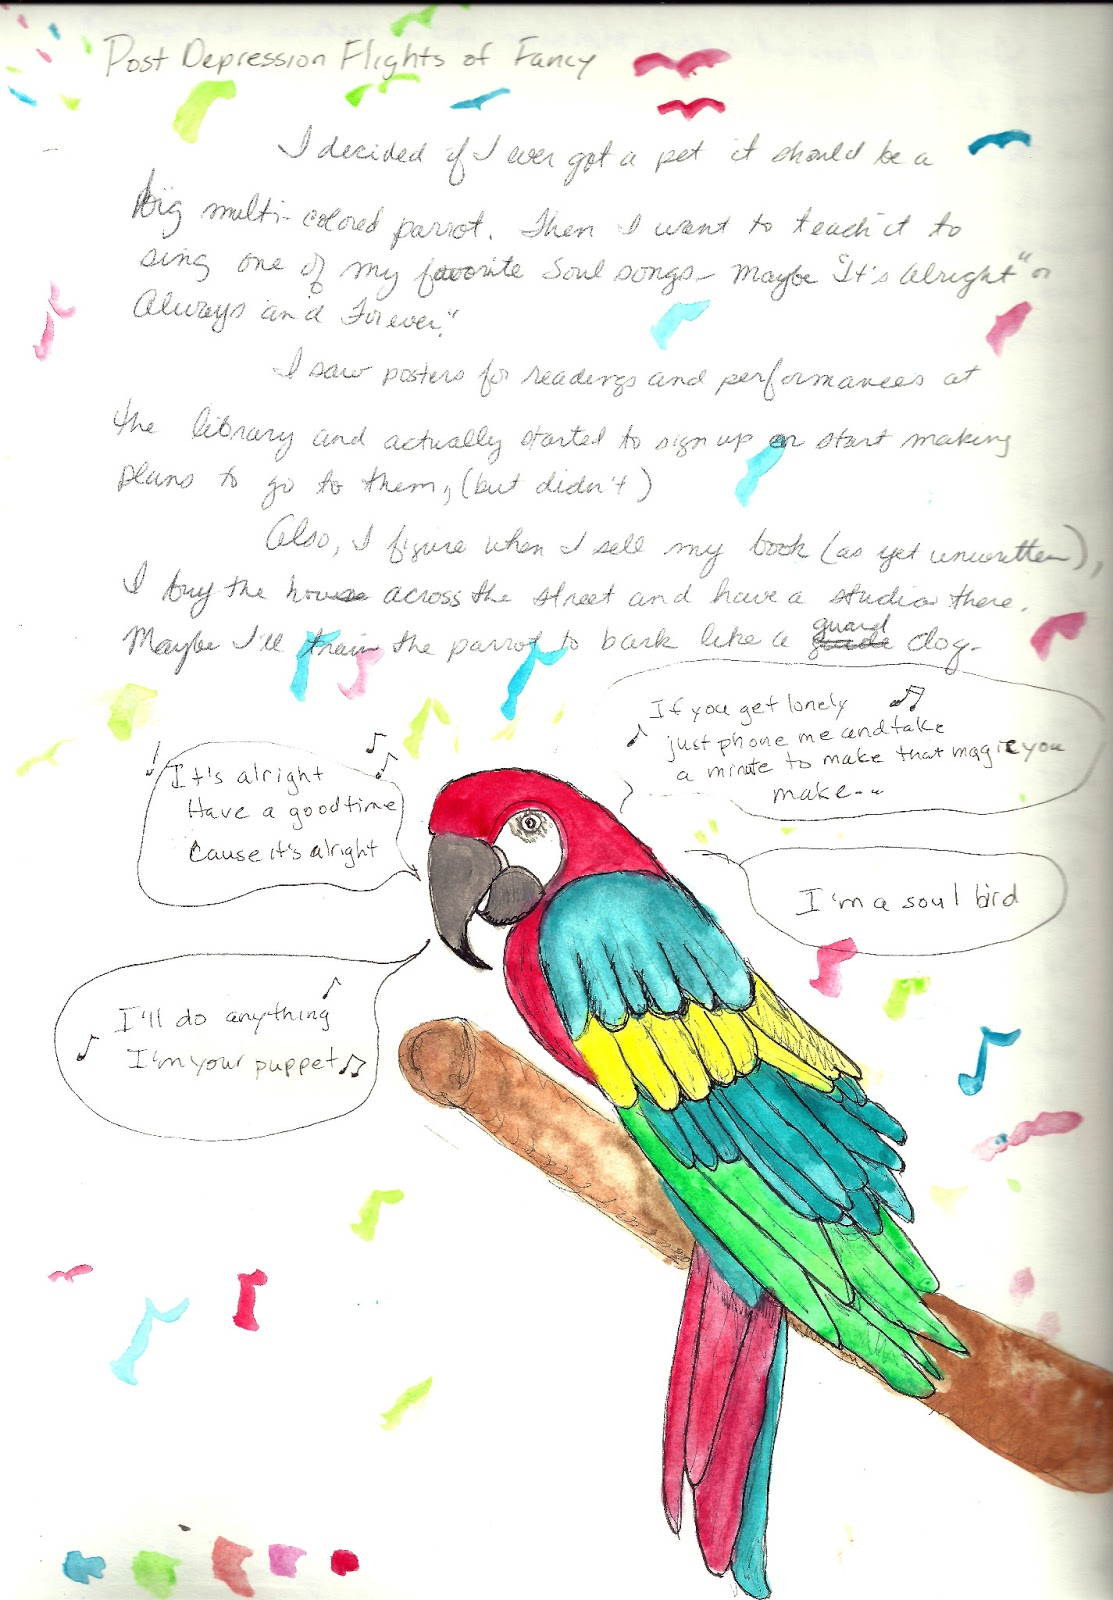 parrot as a pet essay Browse and read my pet essay parrot my pet essay parrot it sounds good when knowing the my pet essay parrot in this website this is one of the books that many people.